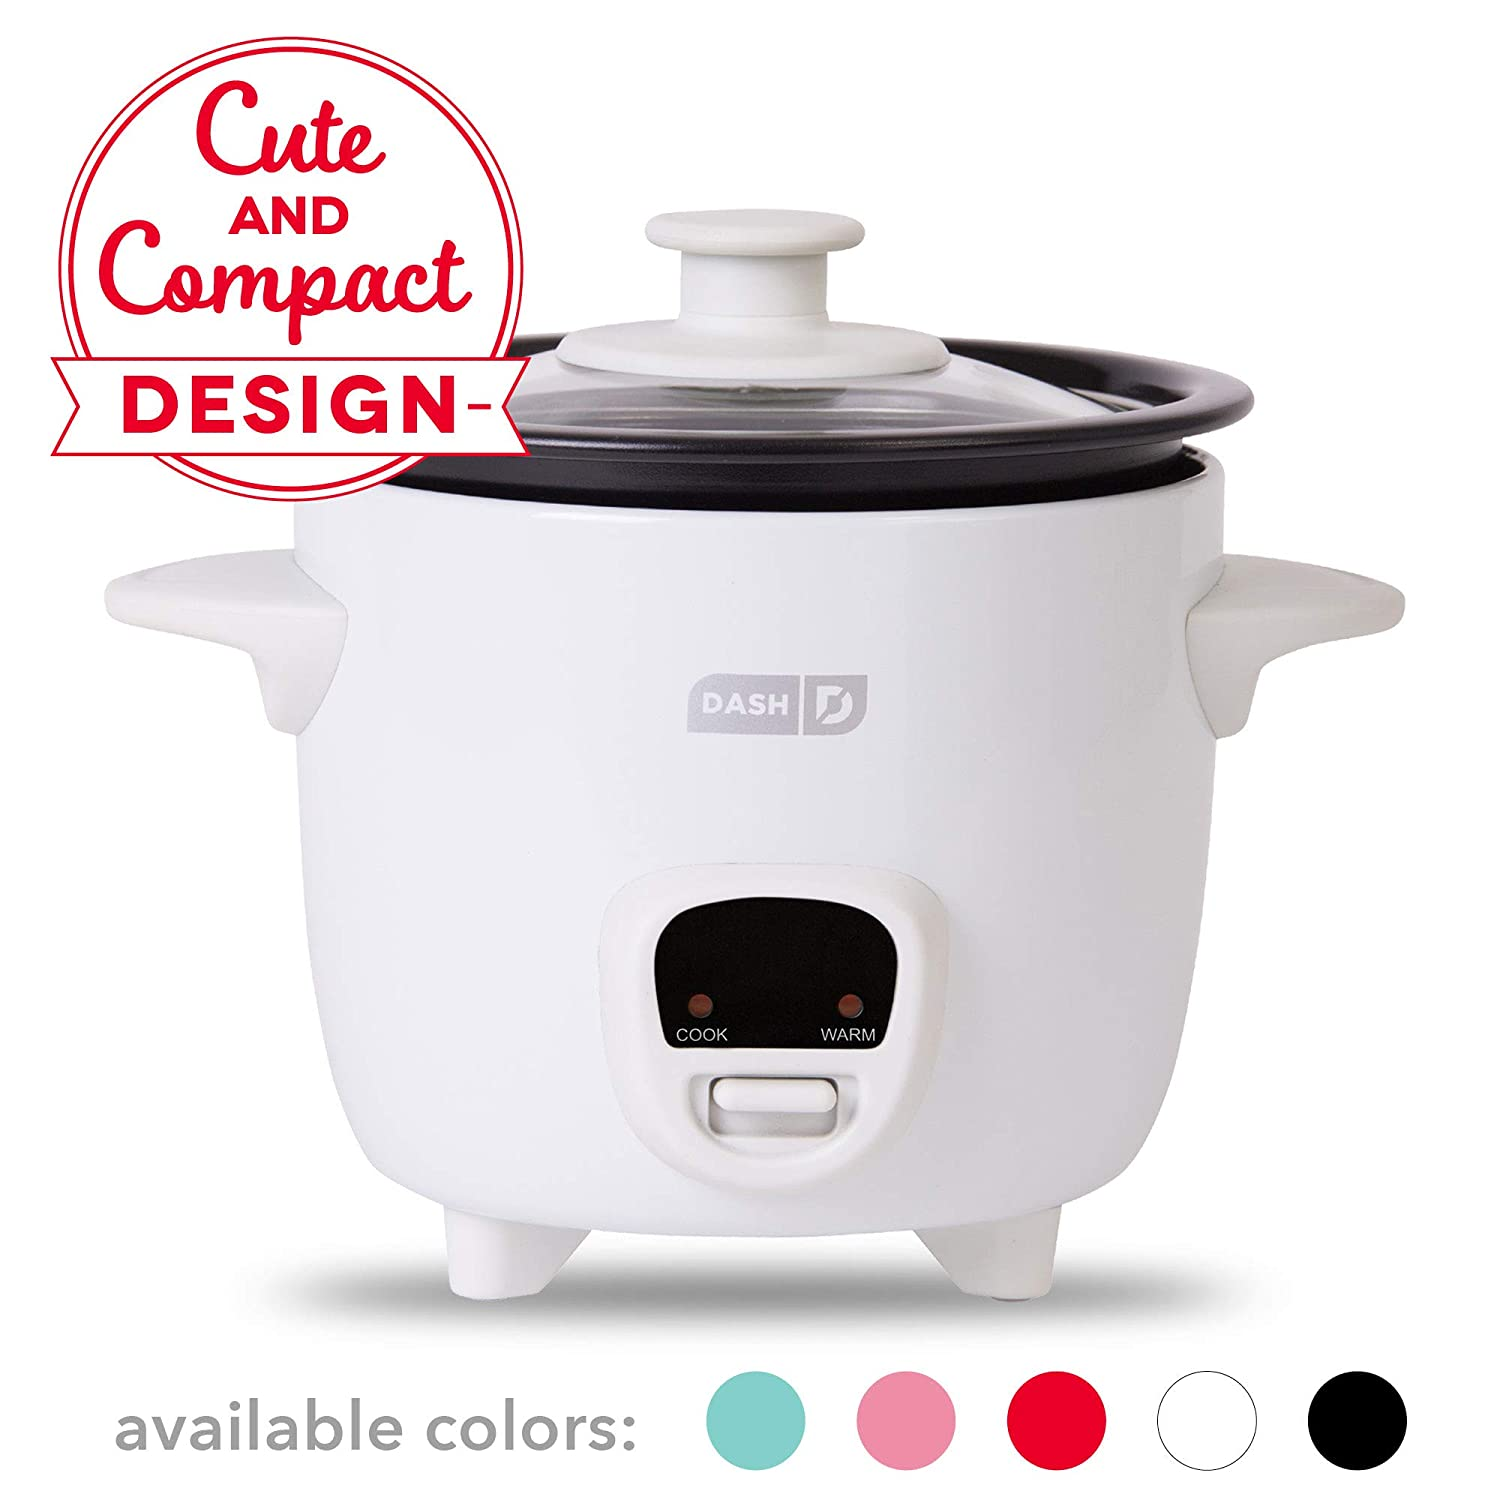 Dash DRCM200GBWH04 Mini Rice Cooker Steamer with Removable Nonstick Pot, Keep Warm Function & Recipe Guide 2 cups, for Soups, Stews, Grains & Oatmeal White